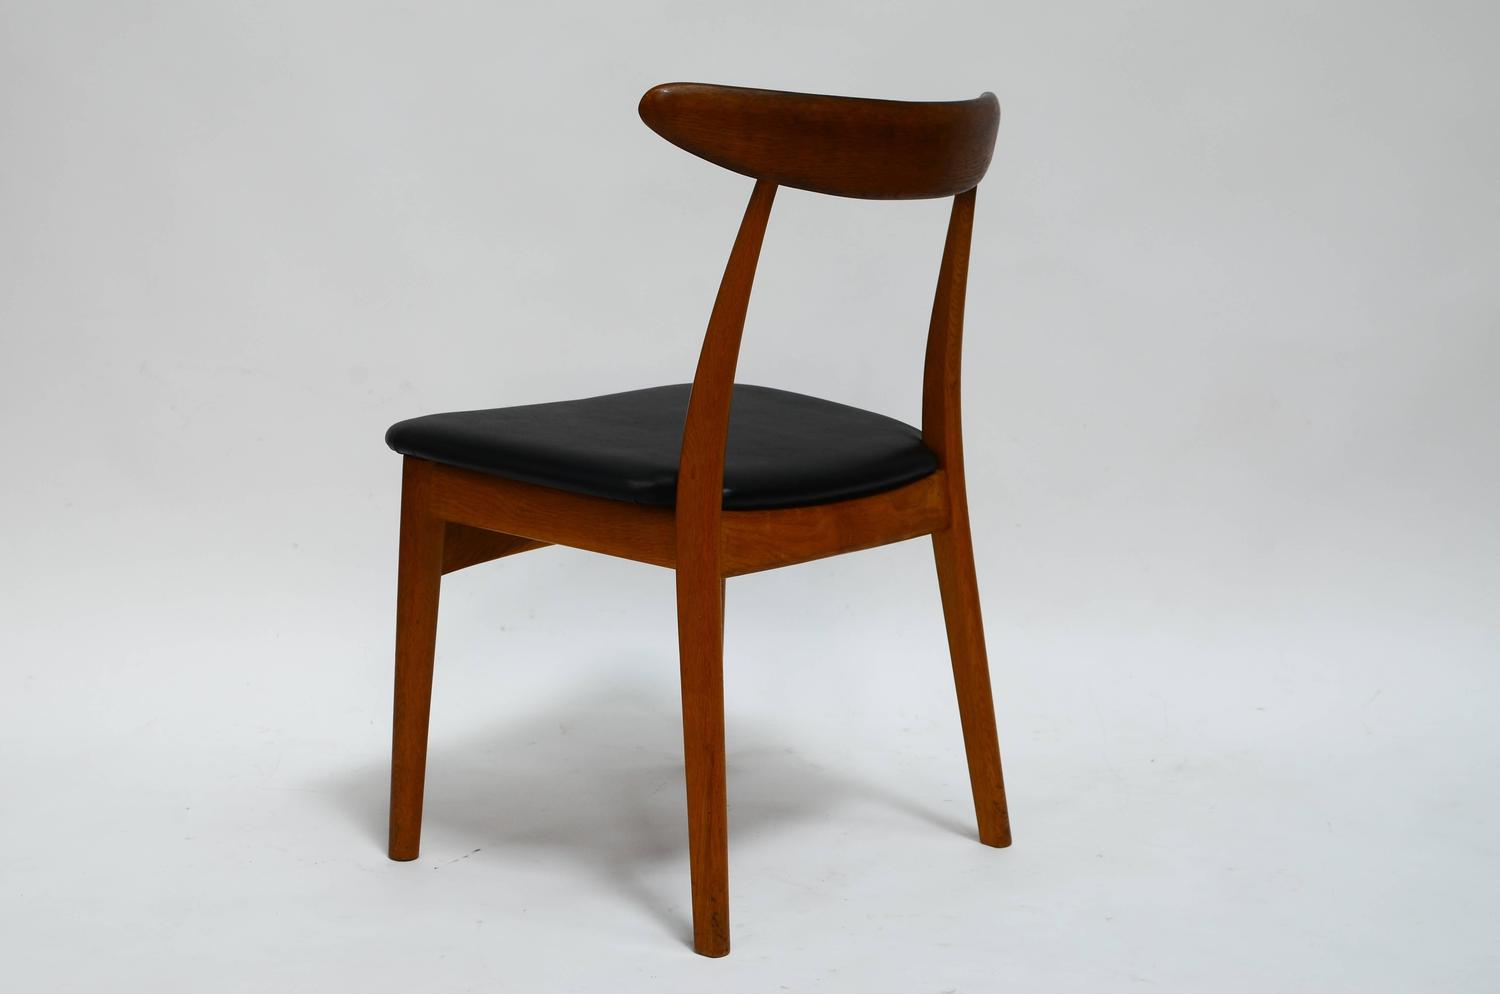 Japanese Chair Japanese Modern Midcentury Dining Chairs For Sale At 1stdibs